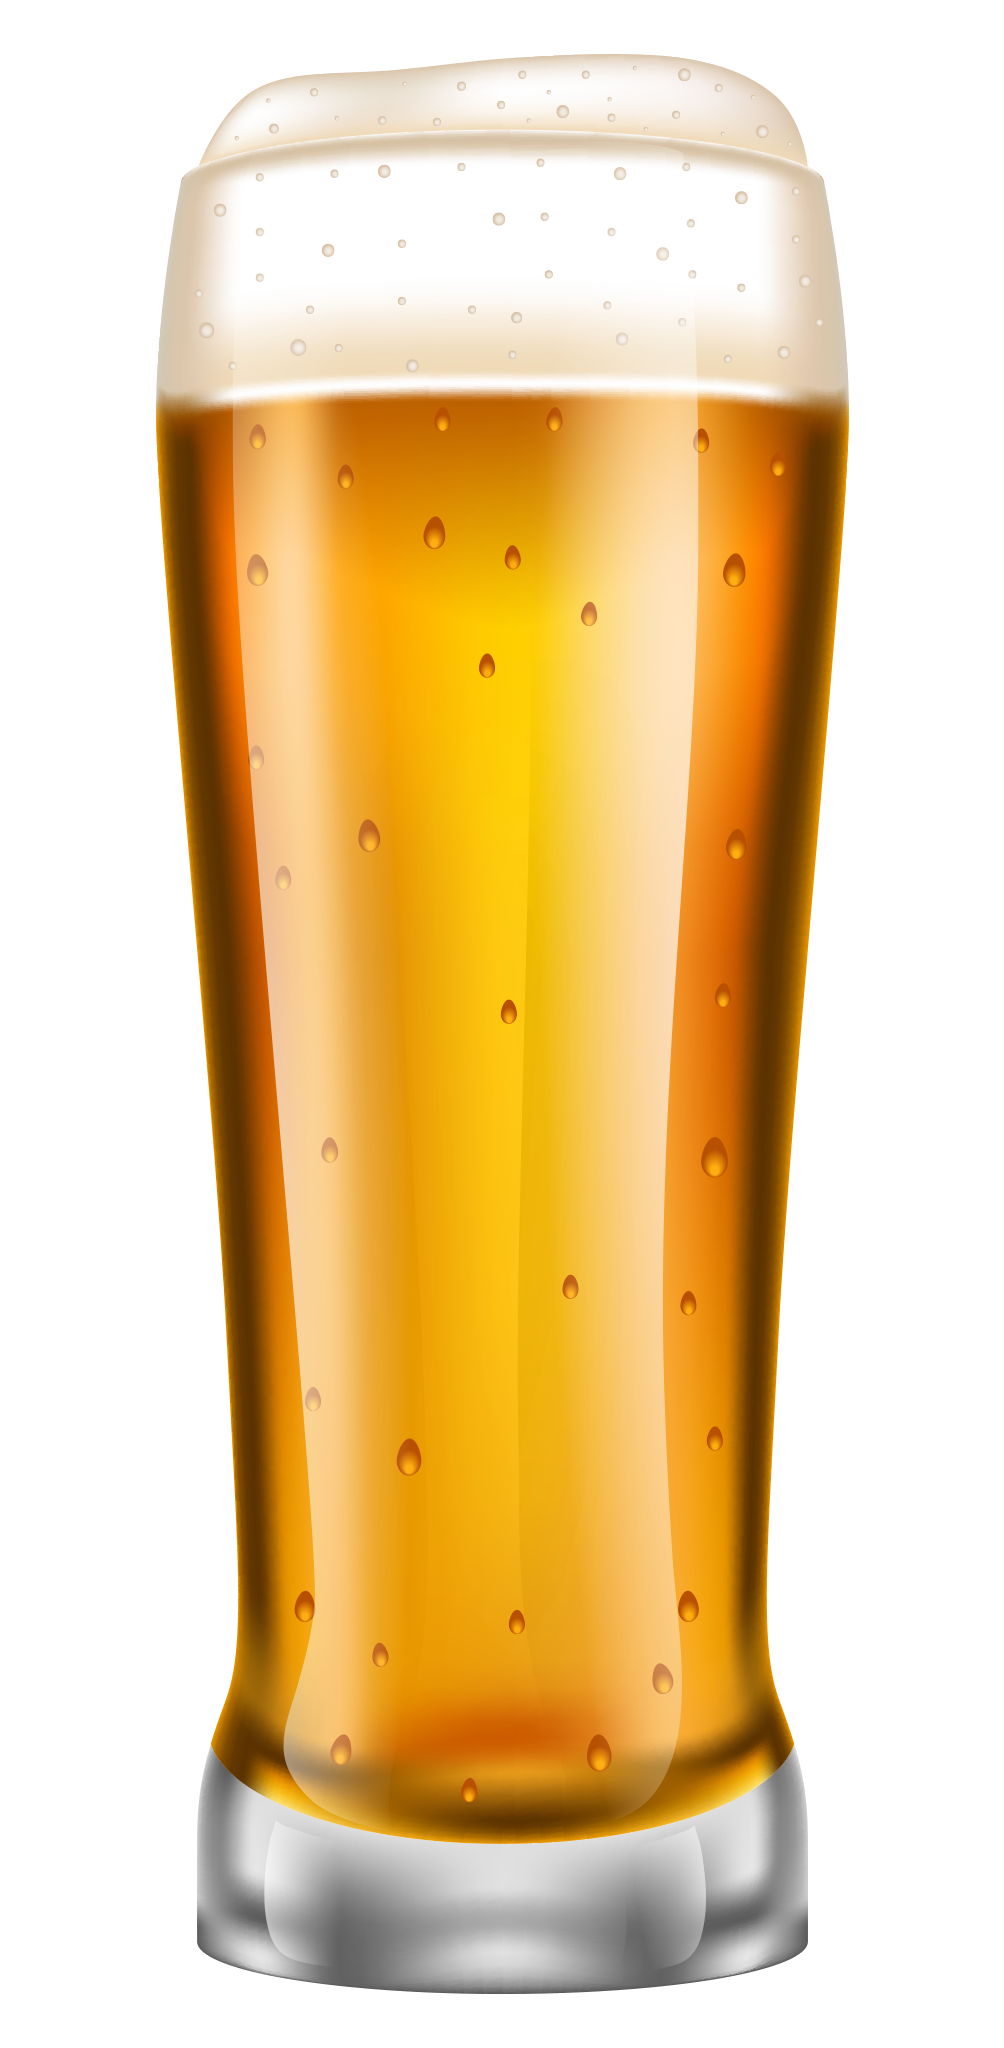 Beer pint glass clipart picture library download Beer Glass Clipart PNG Image Free Download searchpng.com picture library download